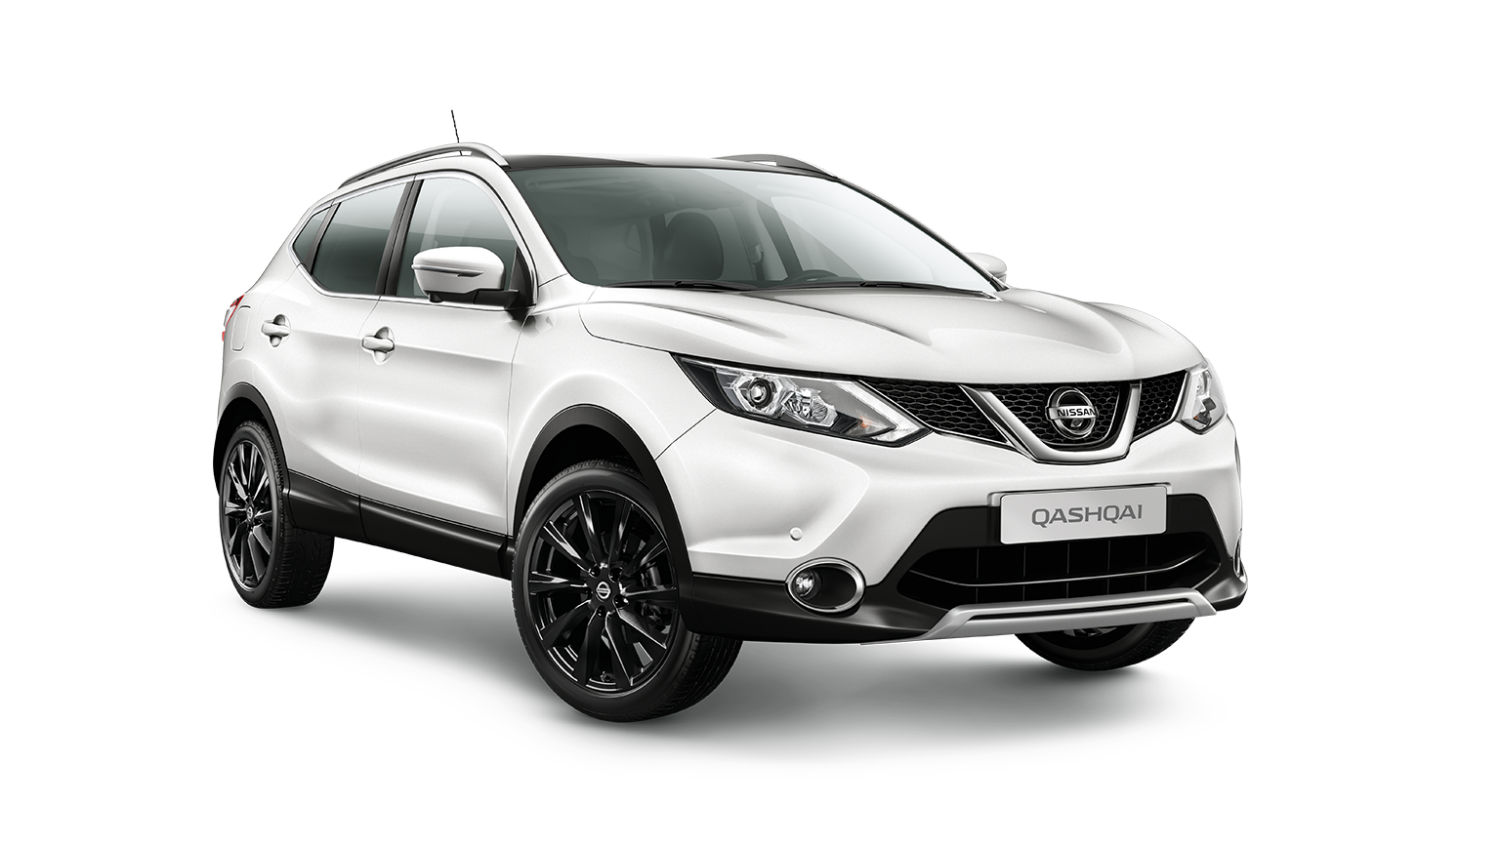 design qashqai crossover familiale suv nissan. Black Bedroom Furniture Sets. Home Design Ideas